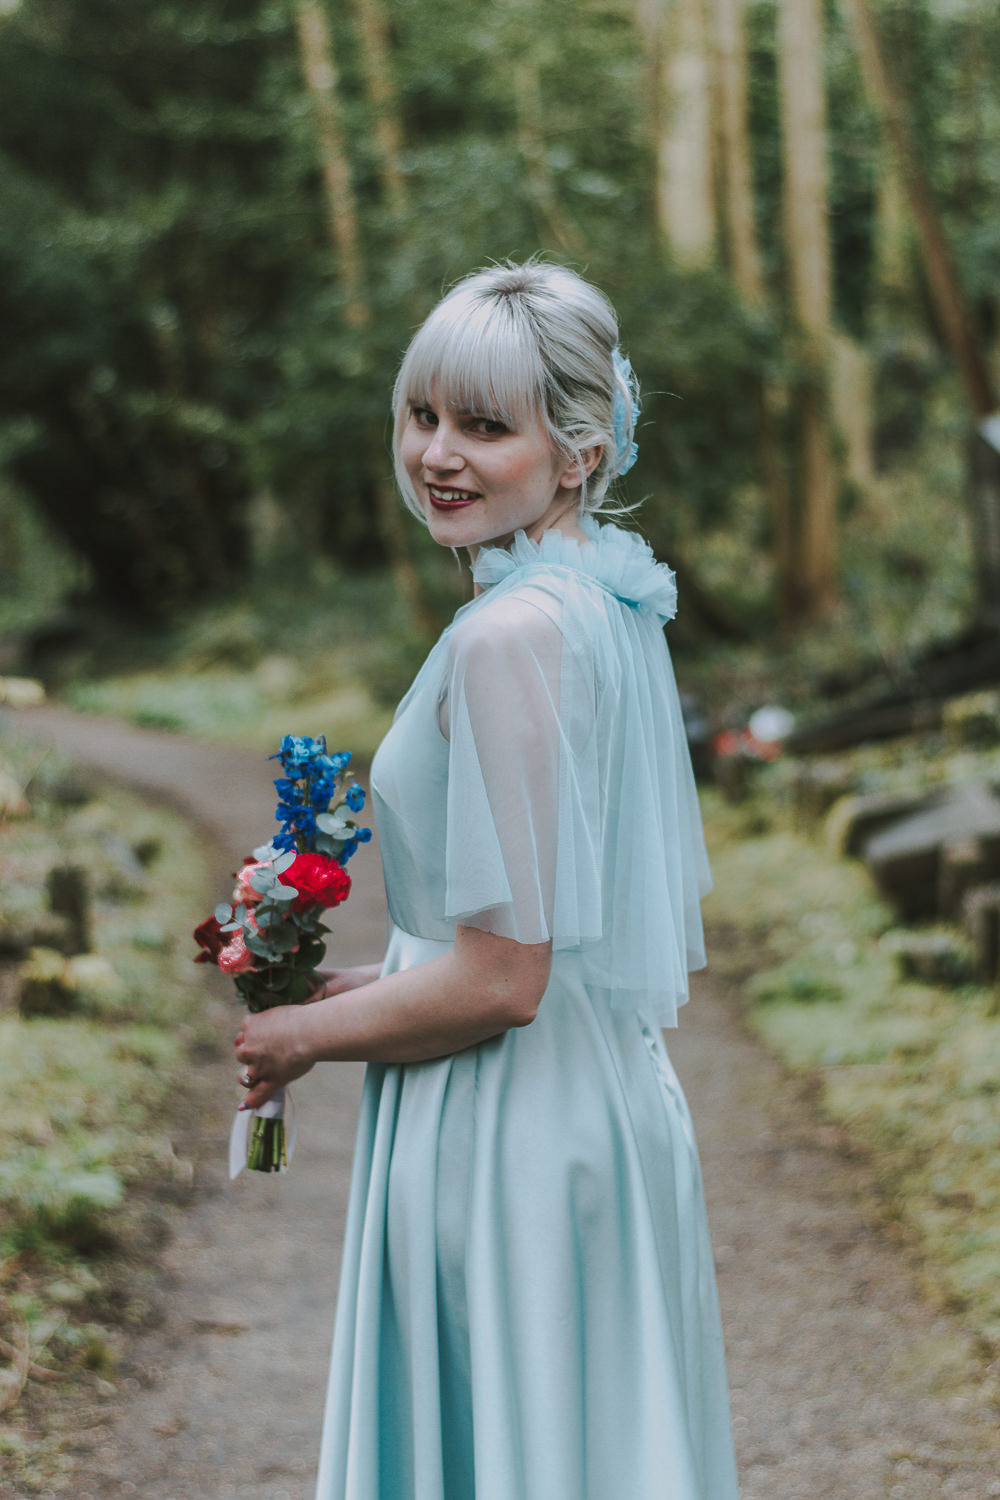 Bridesmaid Bridesmaids Dress Dresses Blue Tulle Wes Anderson William Morris Wedding Ideas Jessica Hill Photography